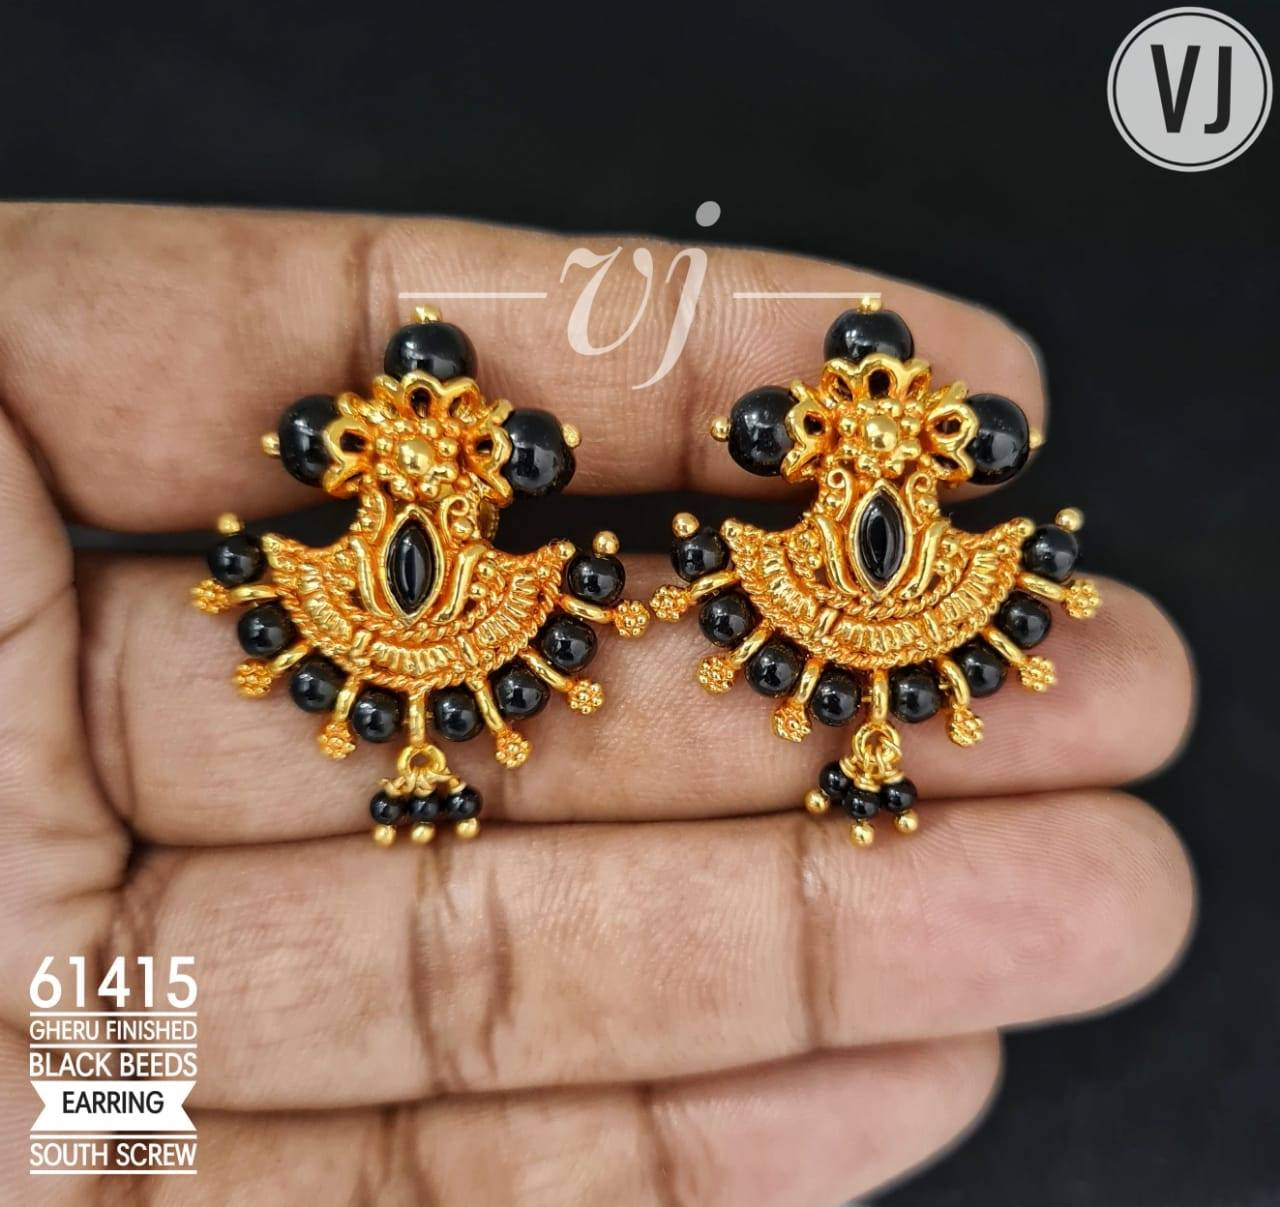 Stunning one gram gold ear studs studded with black beads. one gram gold chain models 1 gram gold jhumka earrings online best 1 gram gold jewellery online